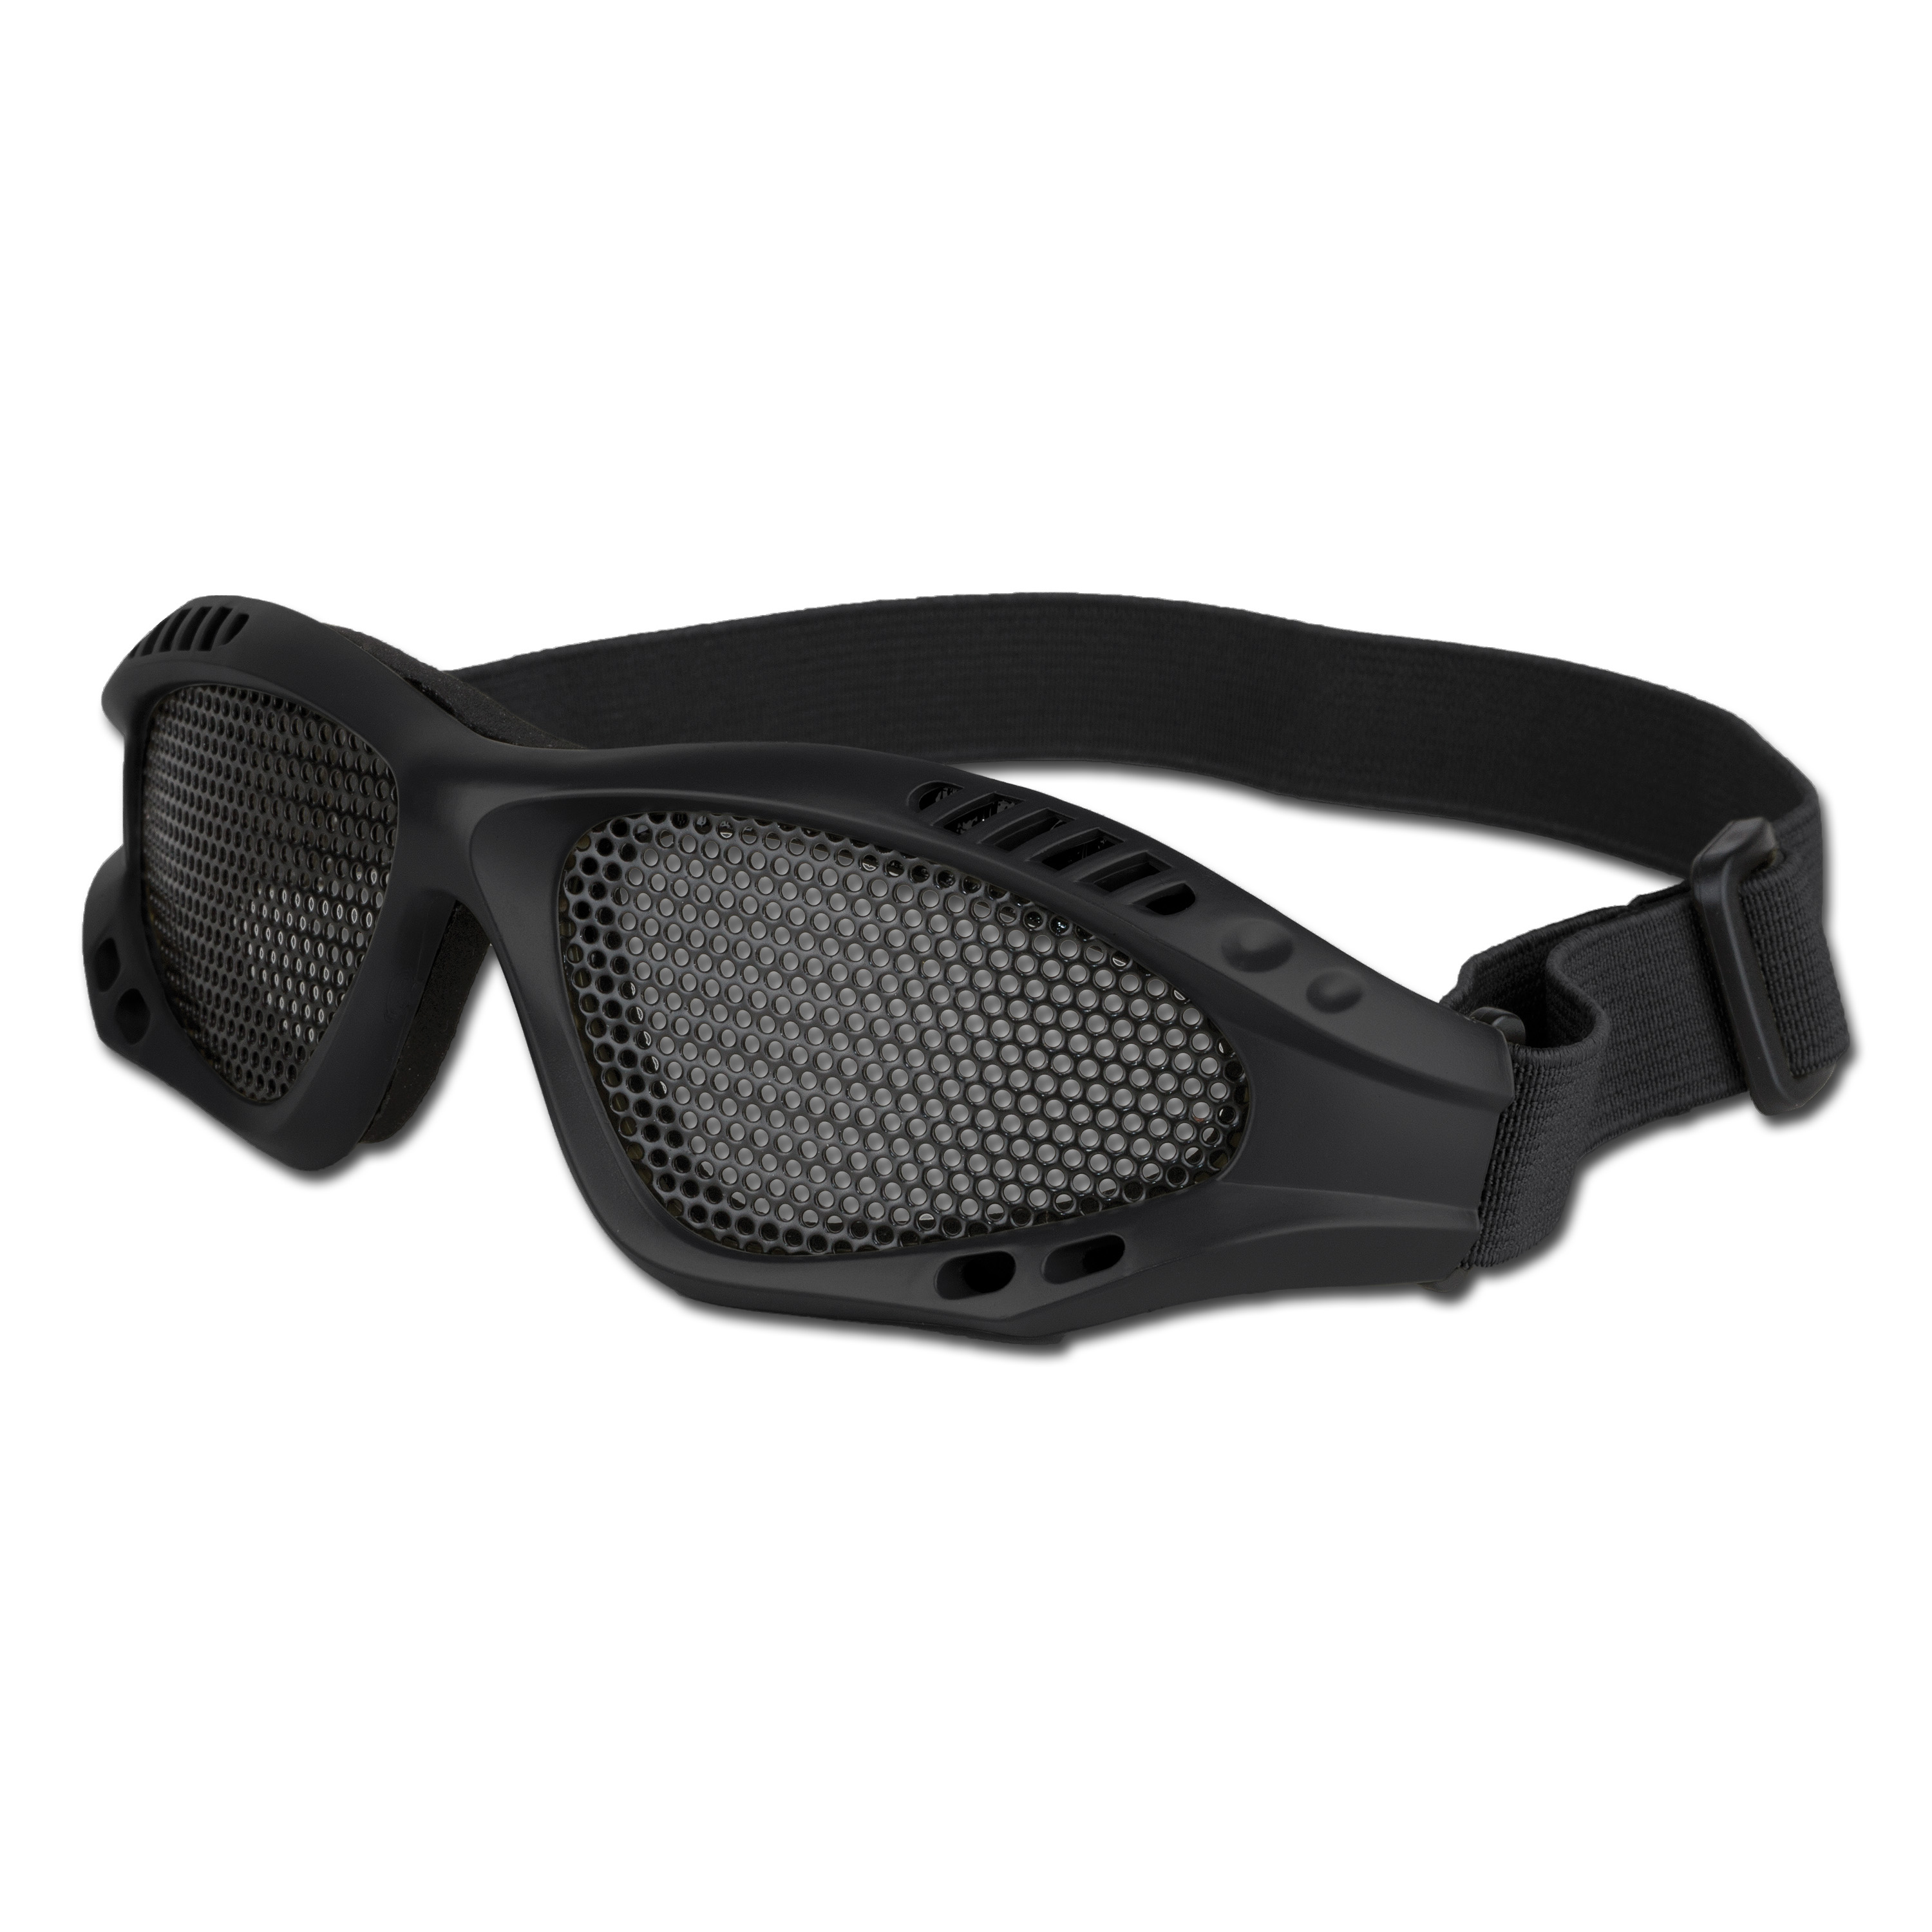 Airsoft Glasses With Metal Mesh Insert black